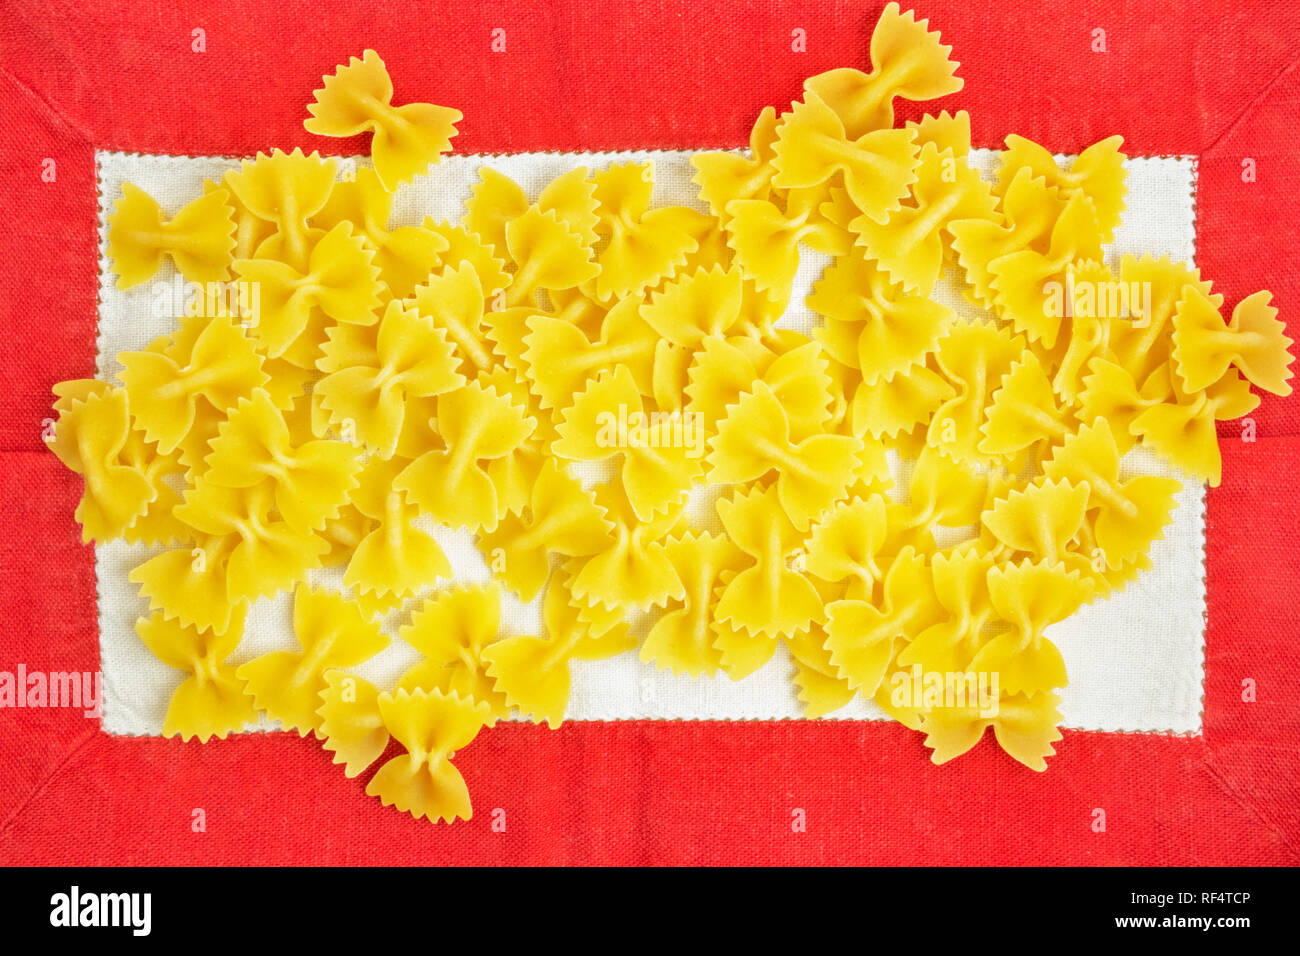 Dry Italian pasta called farfalle on a white-red tablecloth background , beautiful bow tie shape pasta - Stock Image